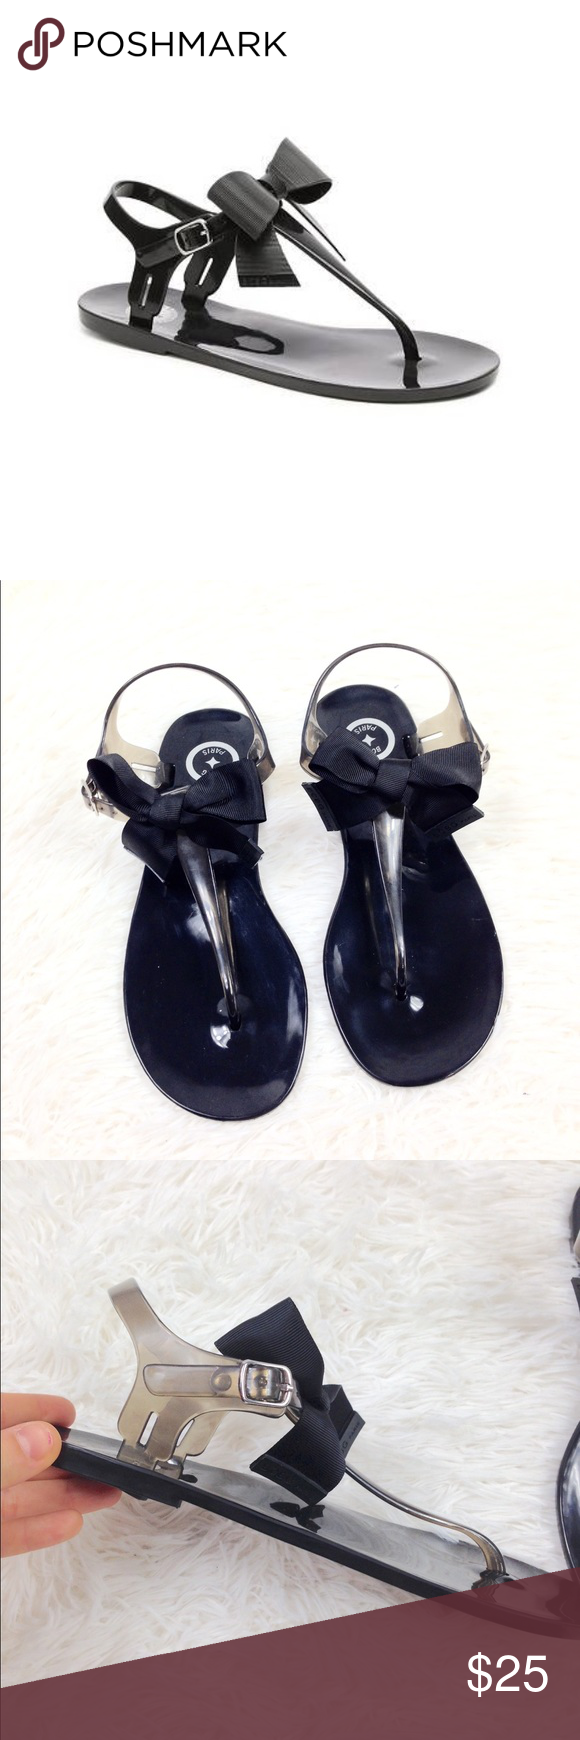 1ce7797dba49 BCBG Paris Beena Jelly Sandal BCBG Beena Jelly Sandal Black with black  ribbon bow on top of foot Size 8 In Great Condition! Perfect for summer